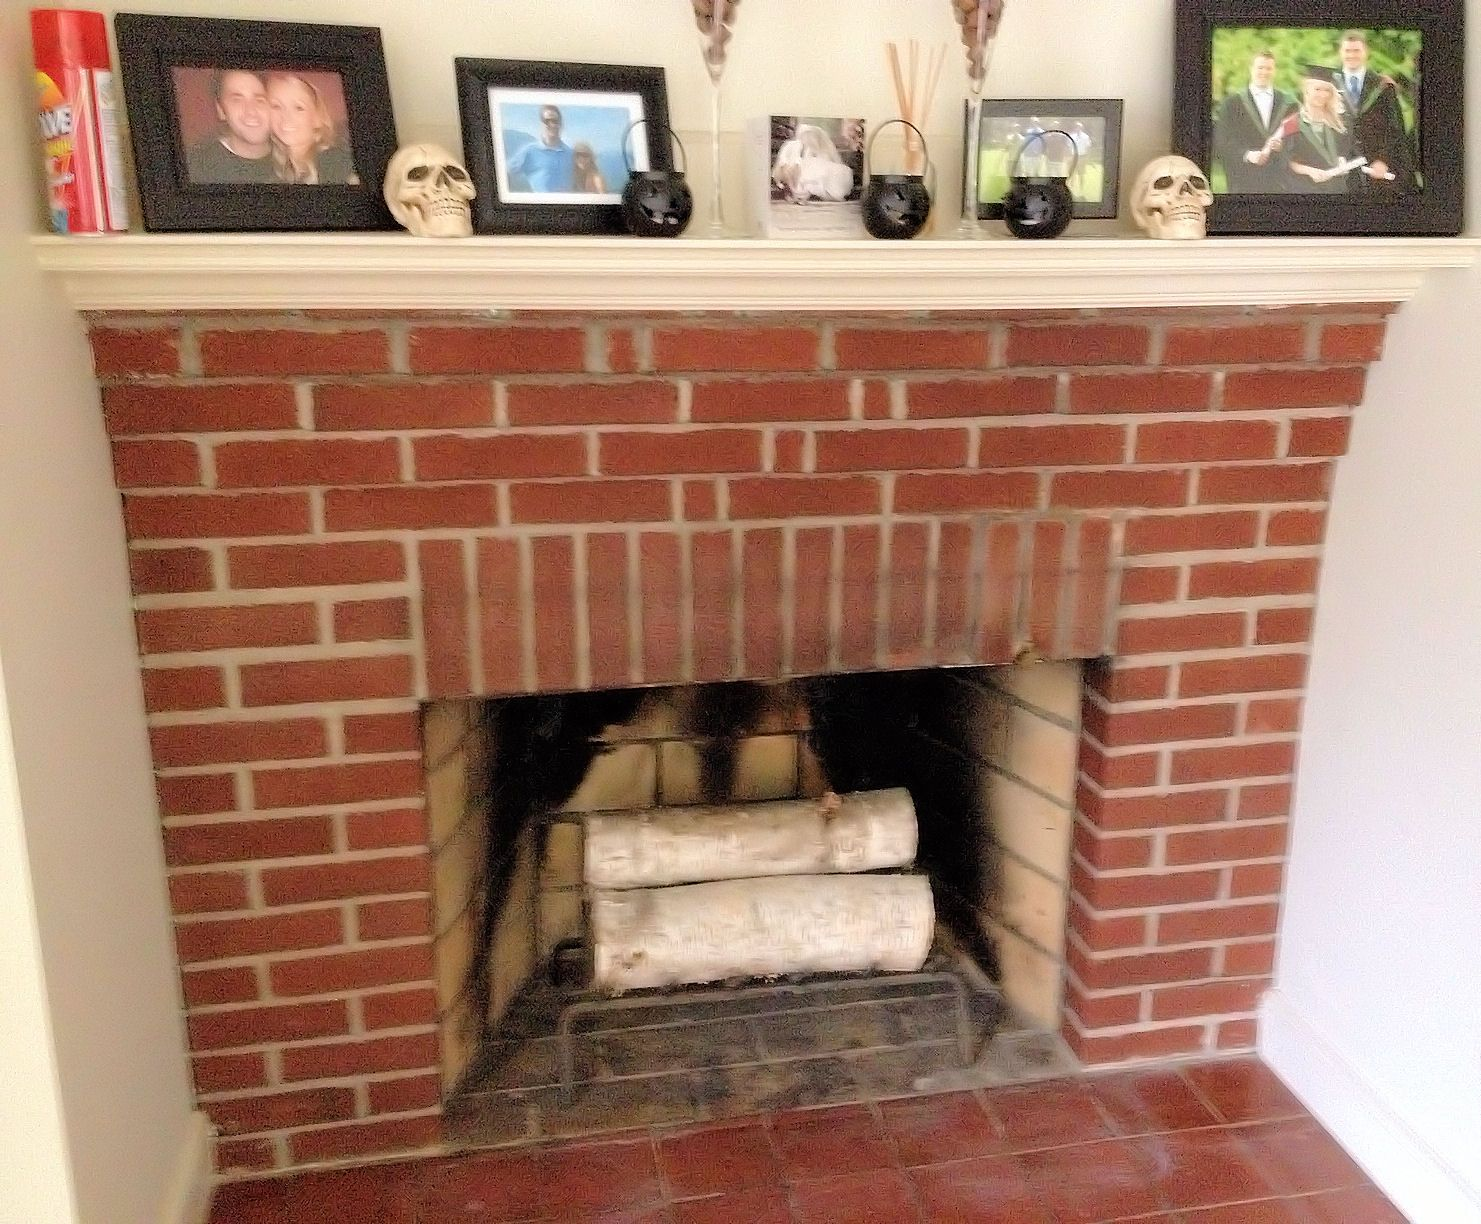 Painted Brick Fireplace: The Power of Whitewash! | Brick fireplace ...